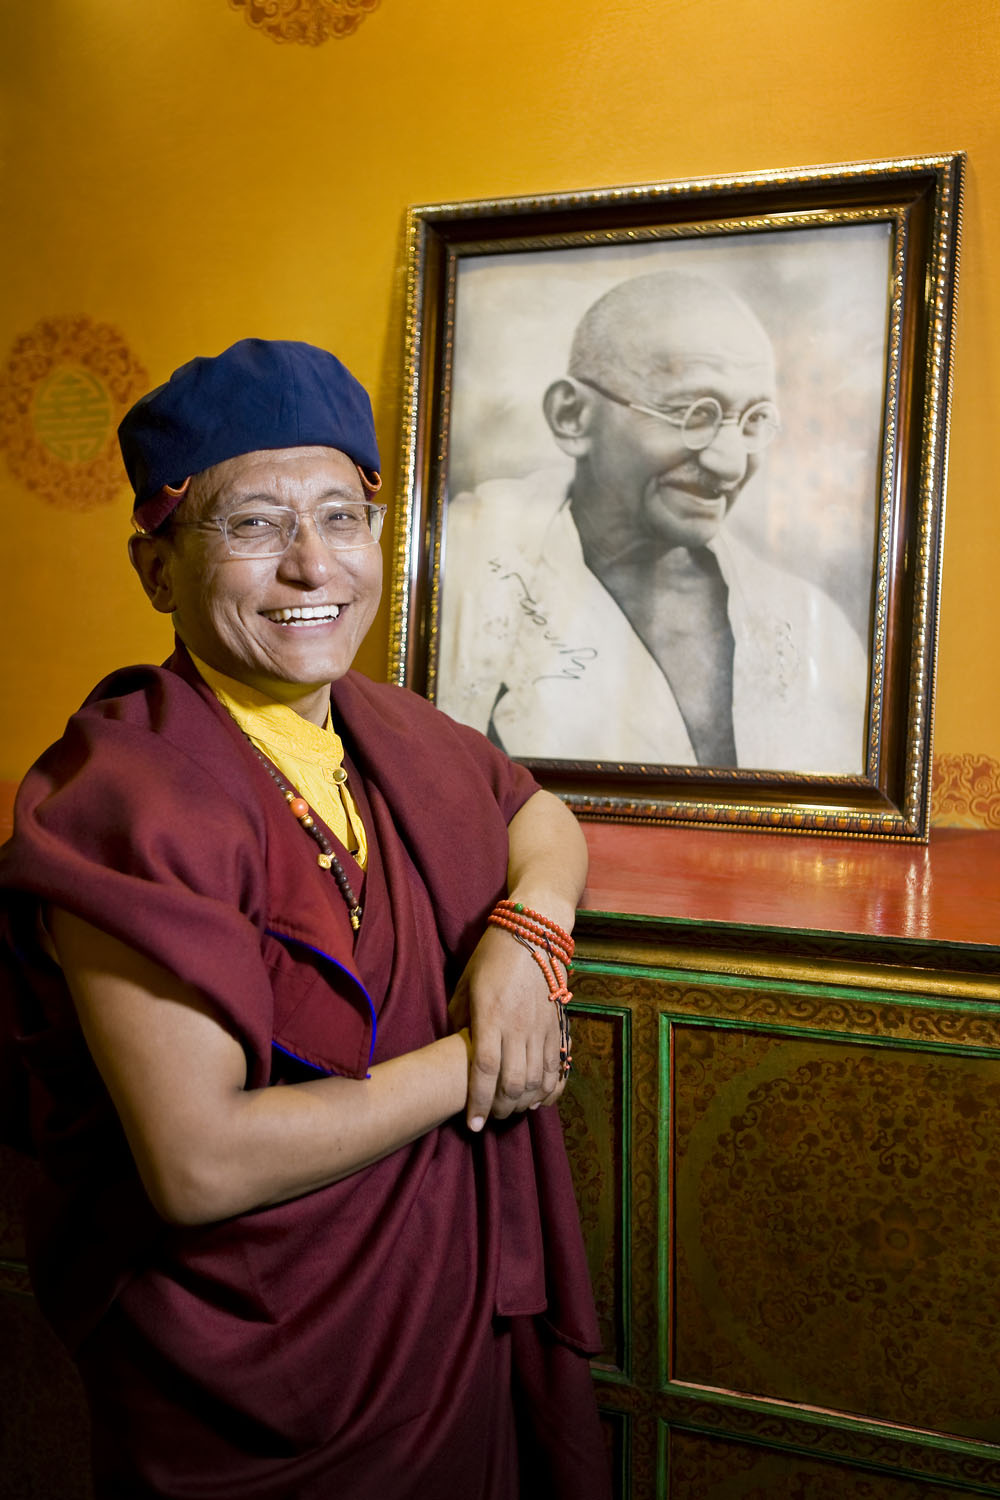 H.H. with signed photo of Gandhi, Hemis Monastery